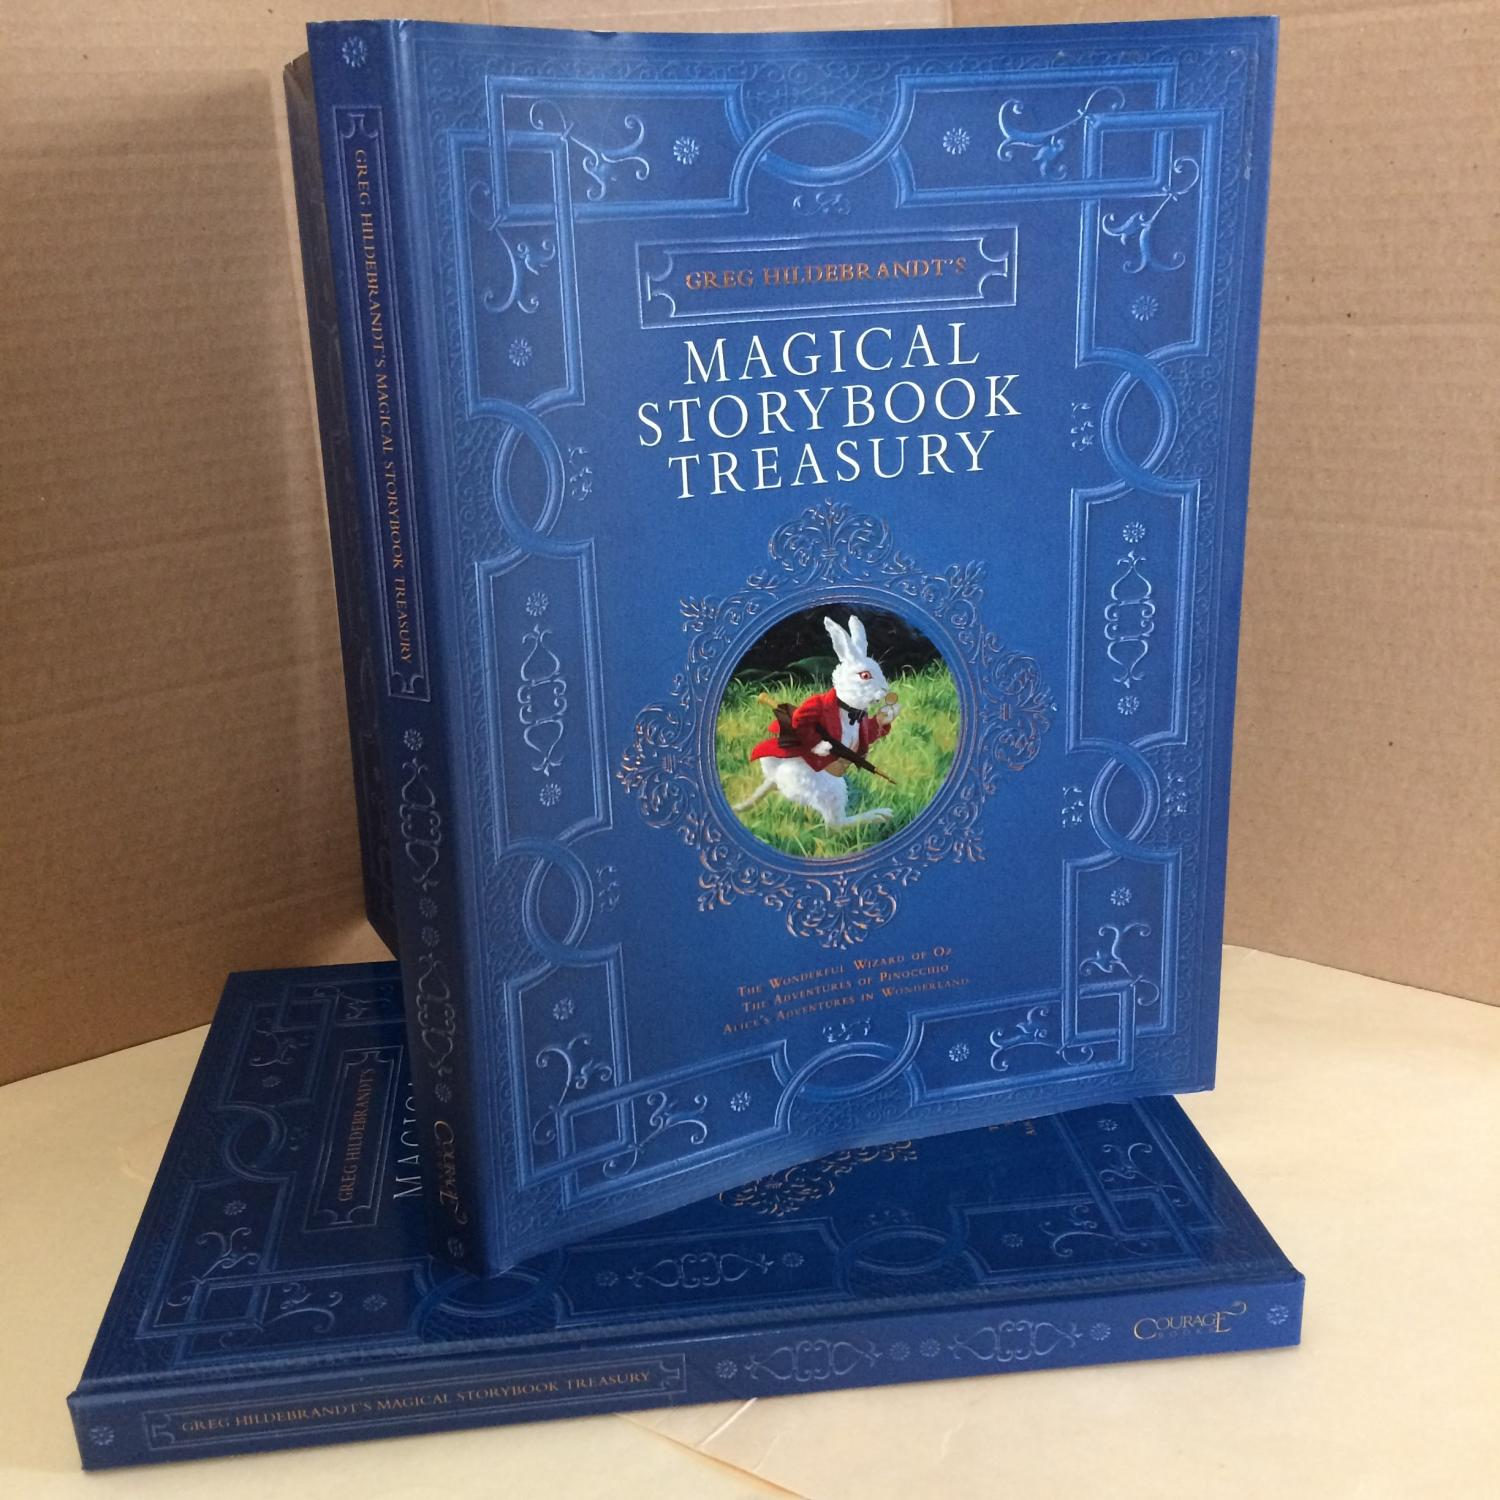 Greg Hildebrandt's Magical Storybook Treasury: The Wonderful Wizard of Oz, The Adventures of Pinocchio, Alice's Adventures in Wonderland - Baum, Frank; Collodi, Carlo; Carroll, Lewis